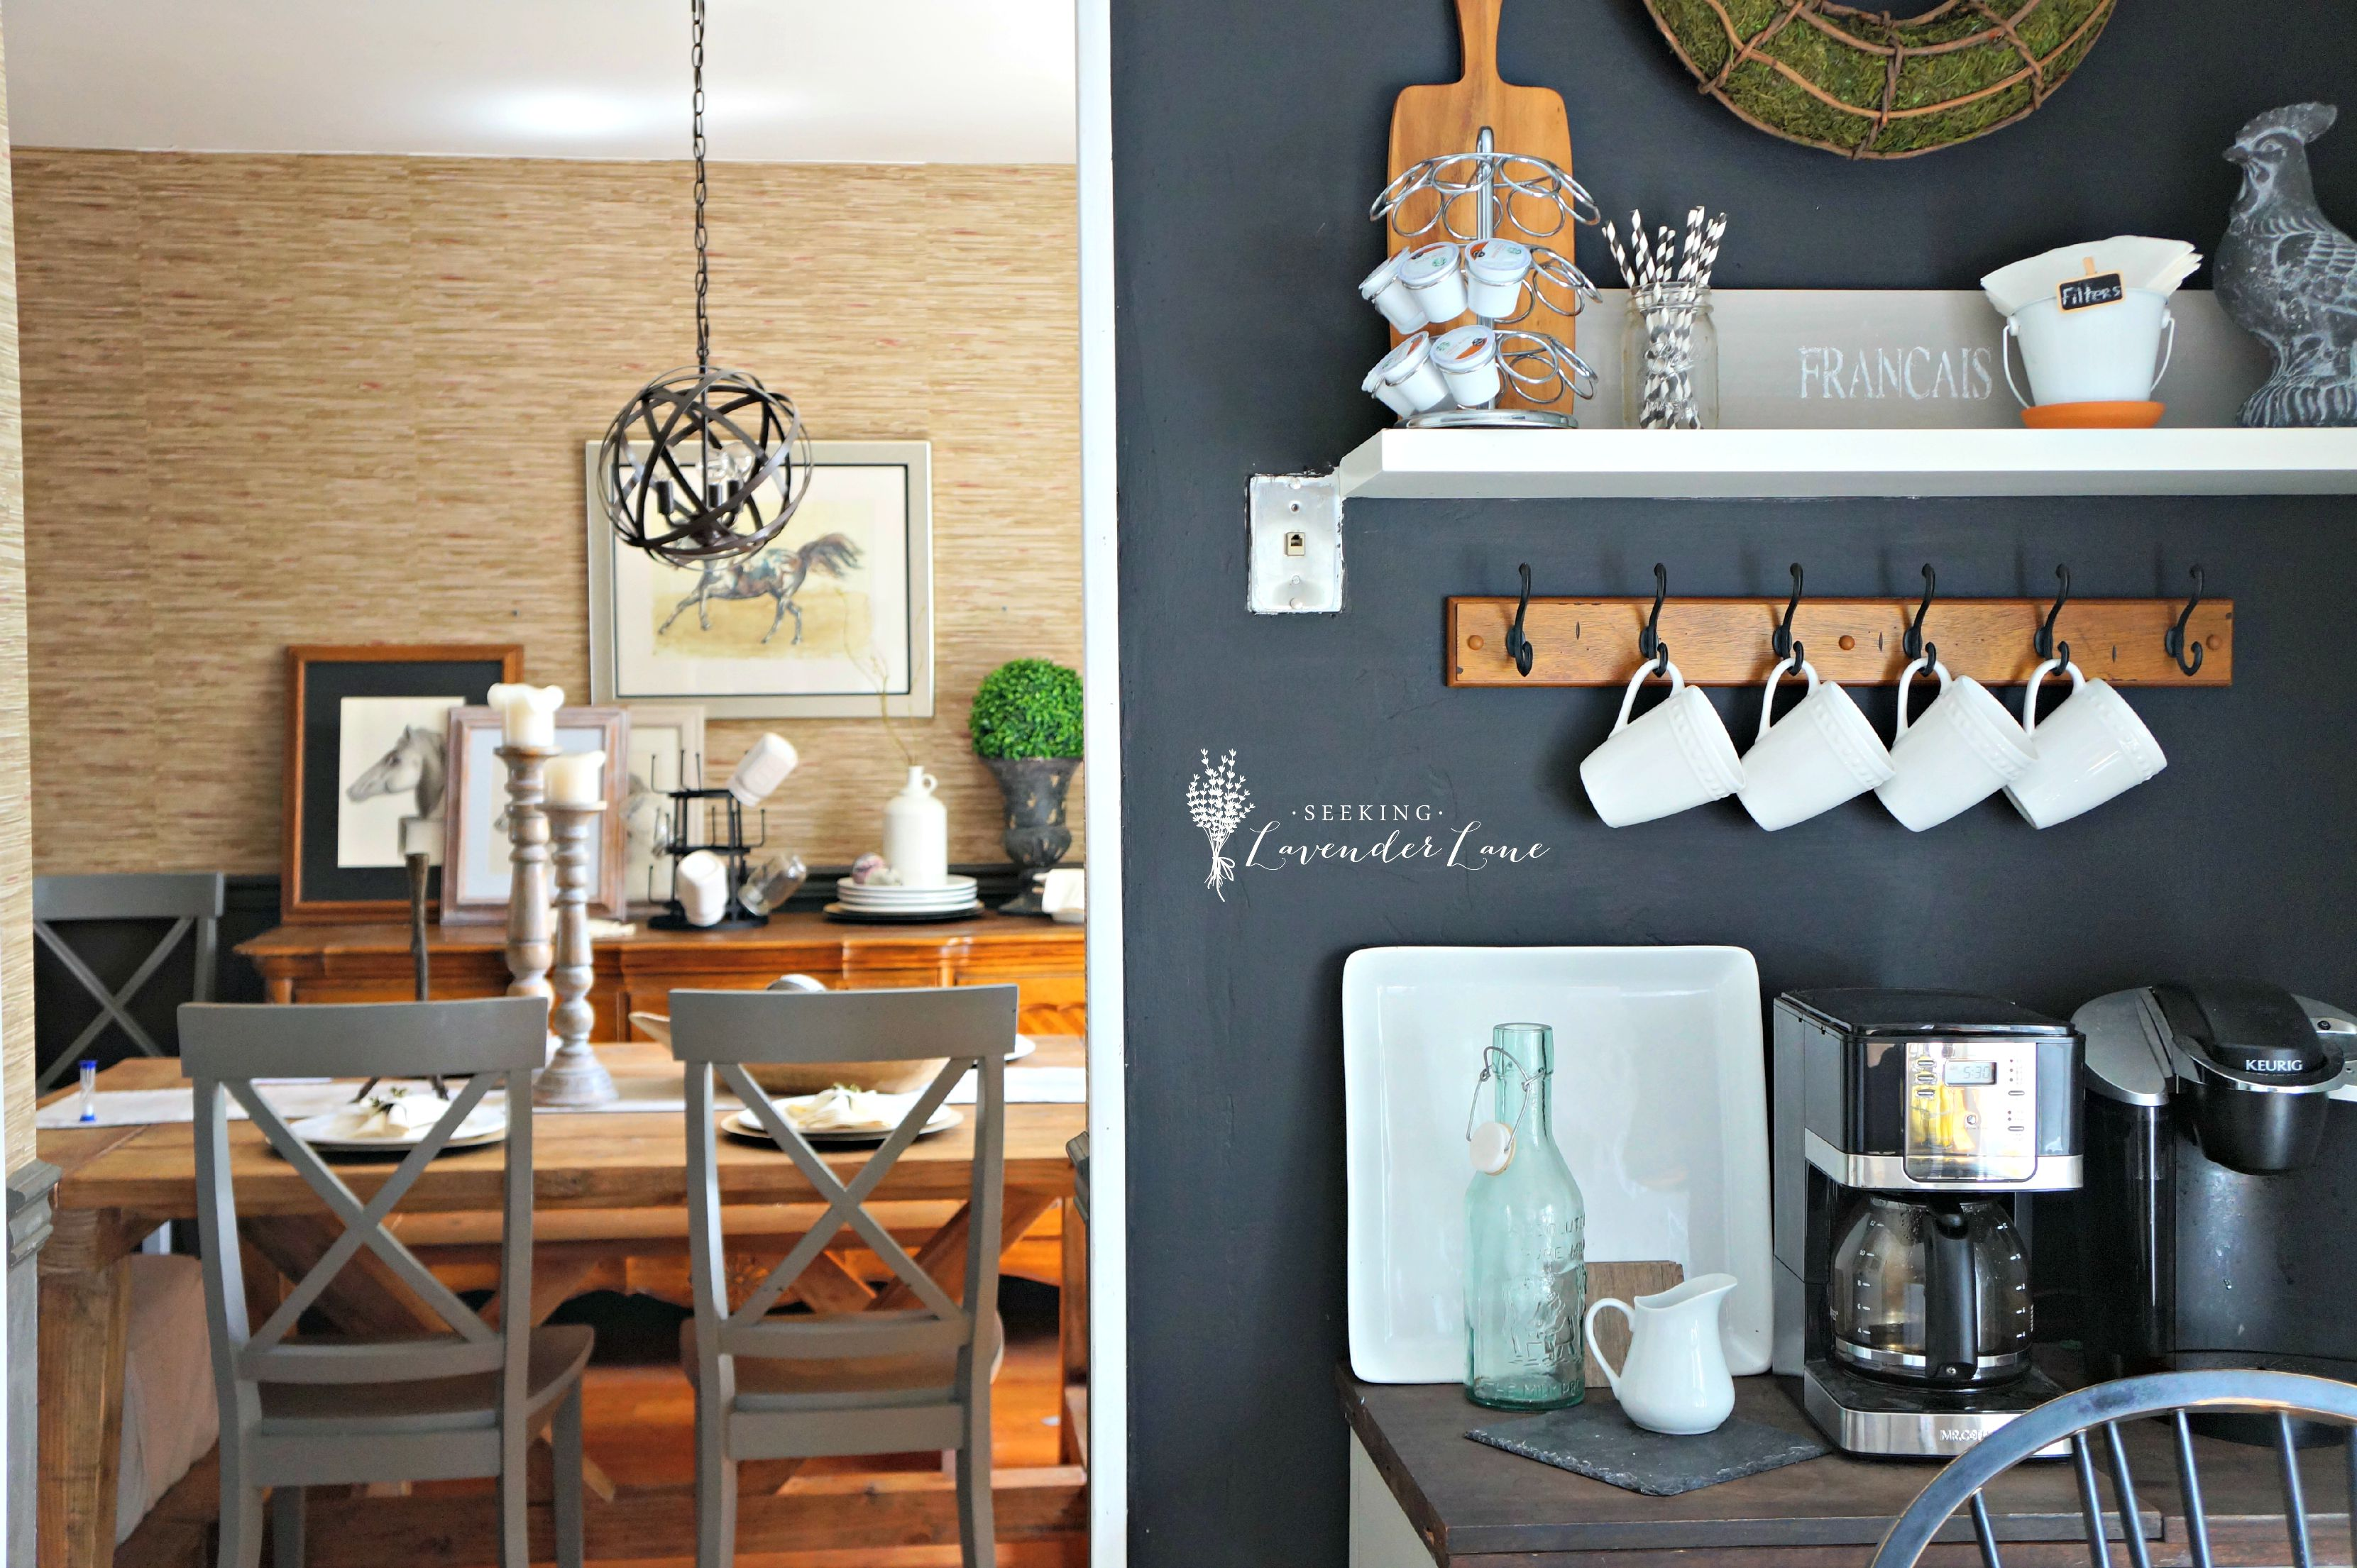 Superieur Chalkboard Wall Kitchen And Dining Room